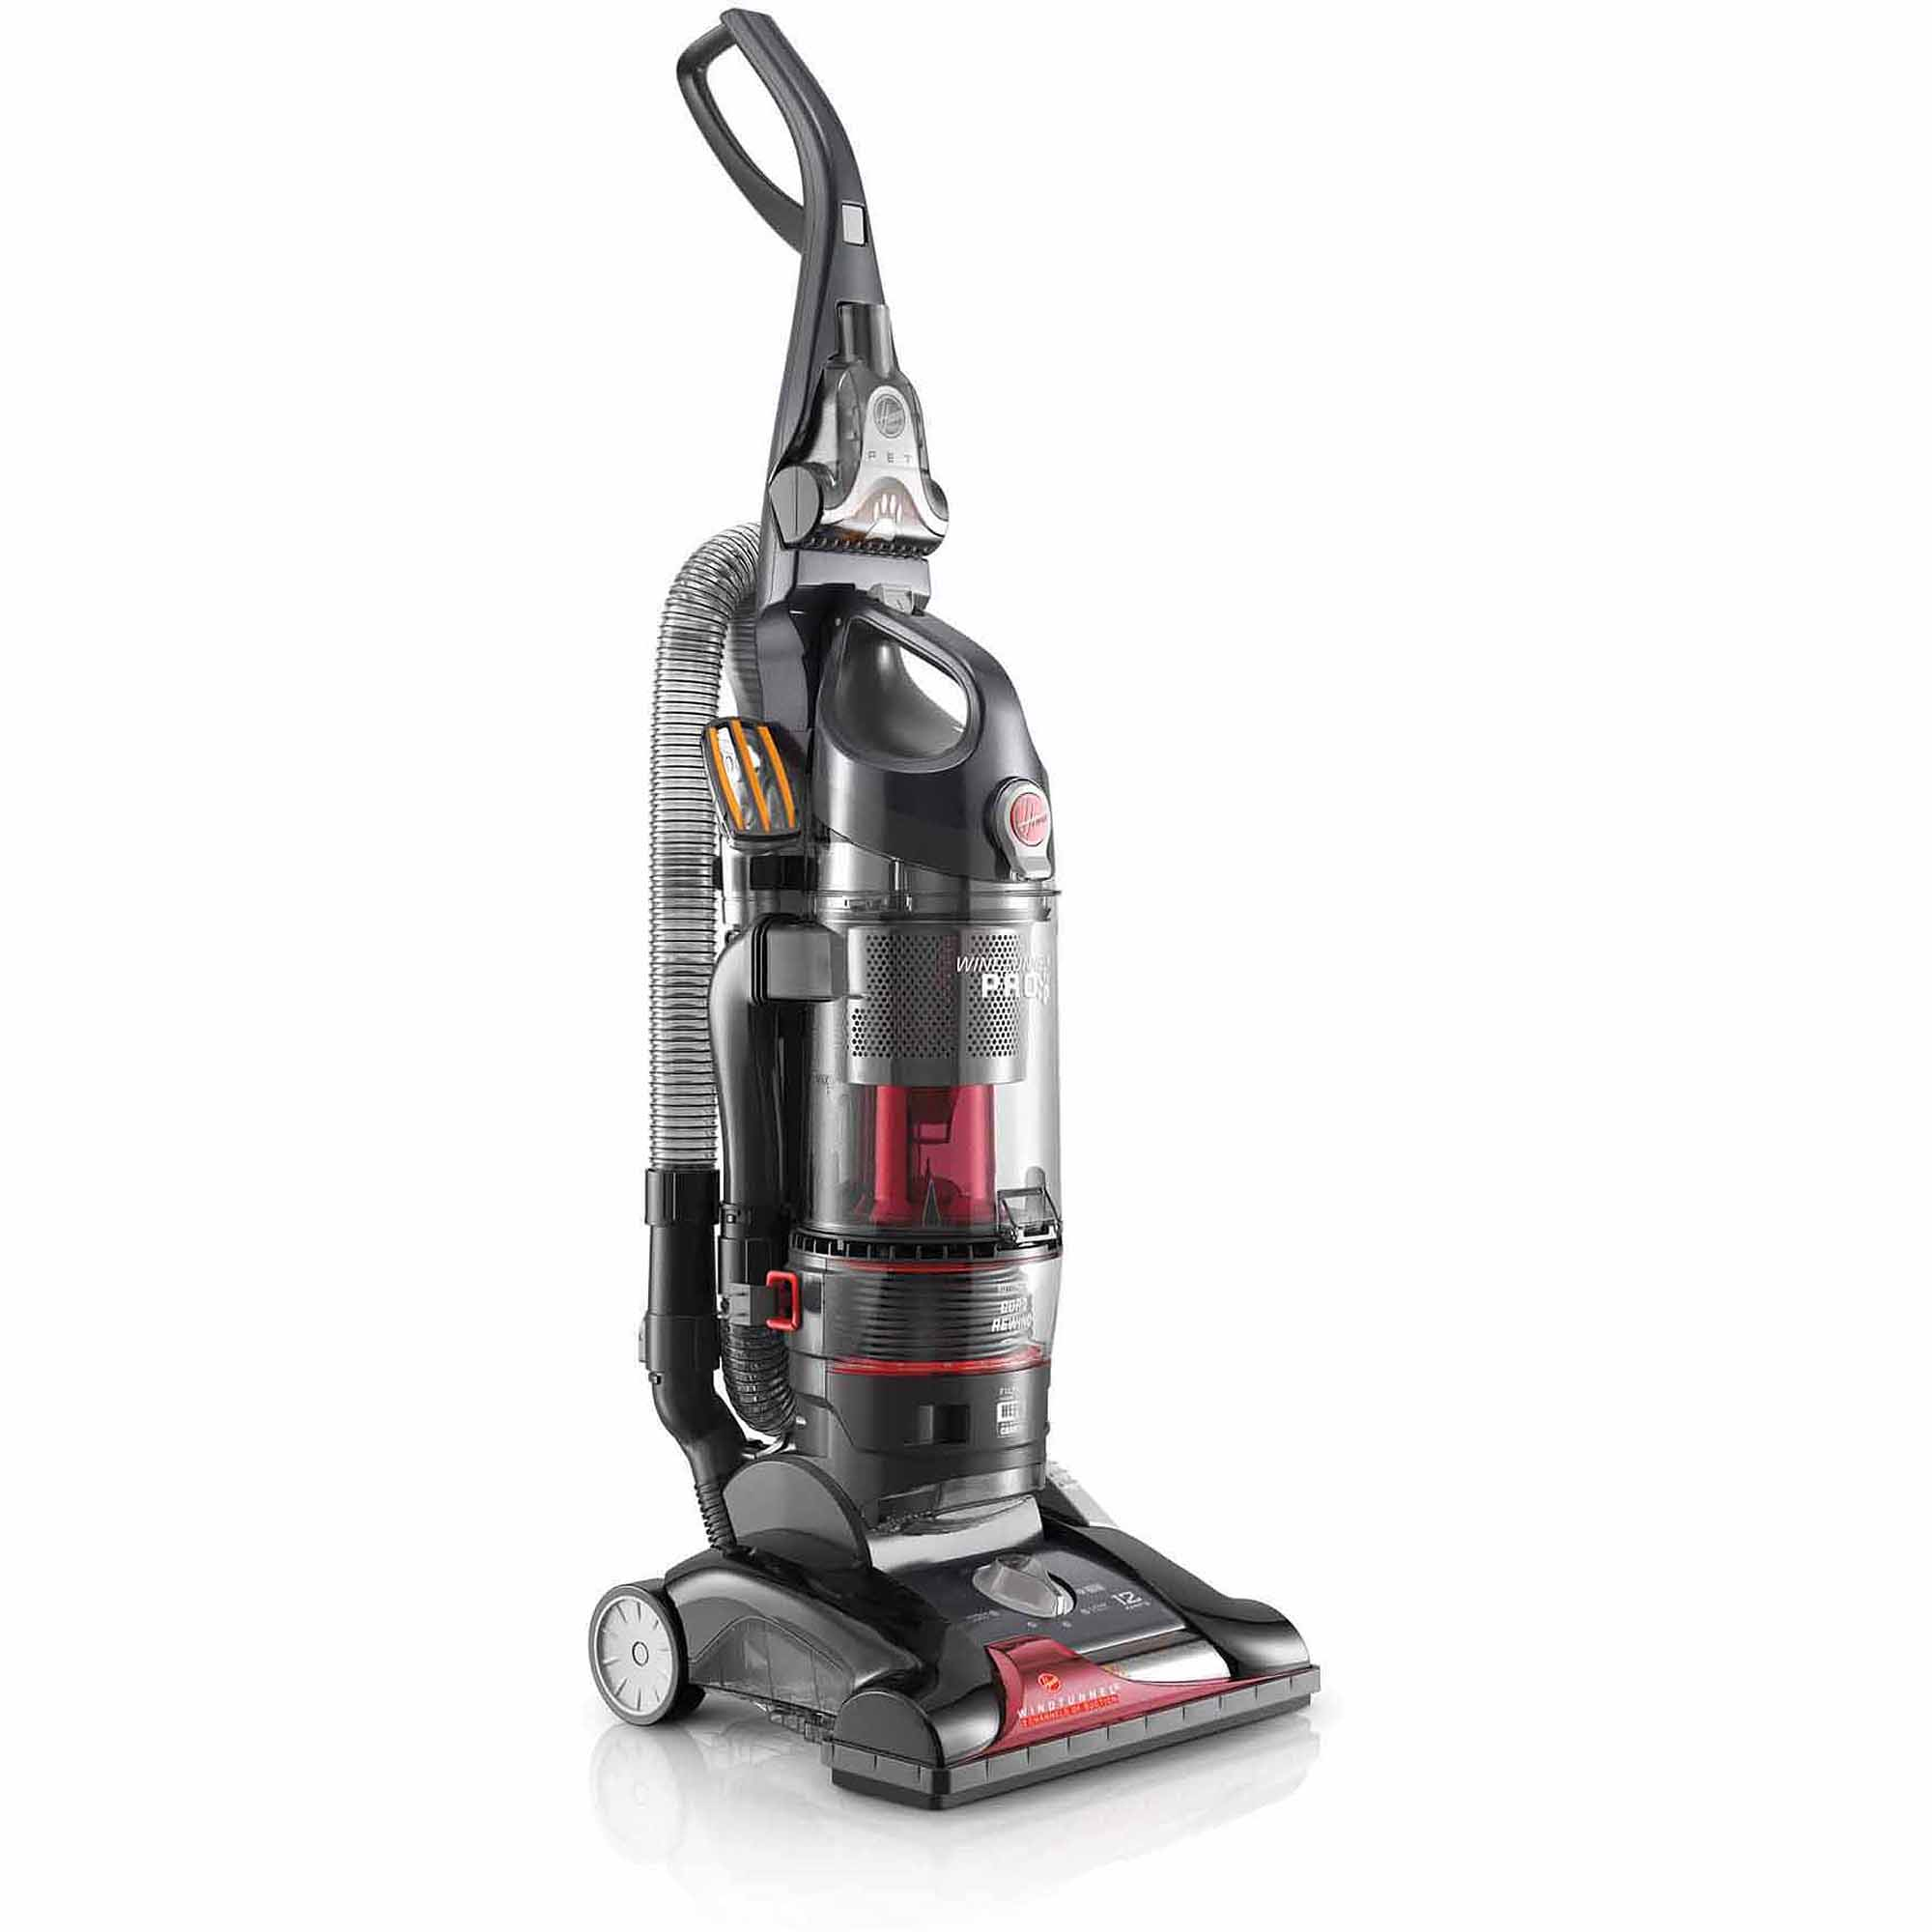 Hoover WindTunnel 3 Pro Pet Bagless Upright Vacuum, UH70931PC